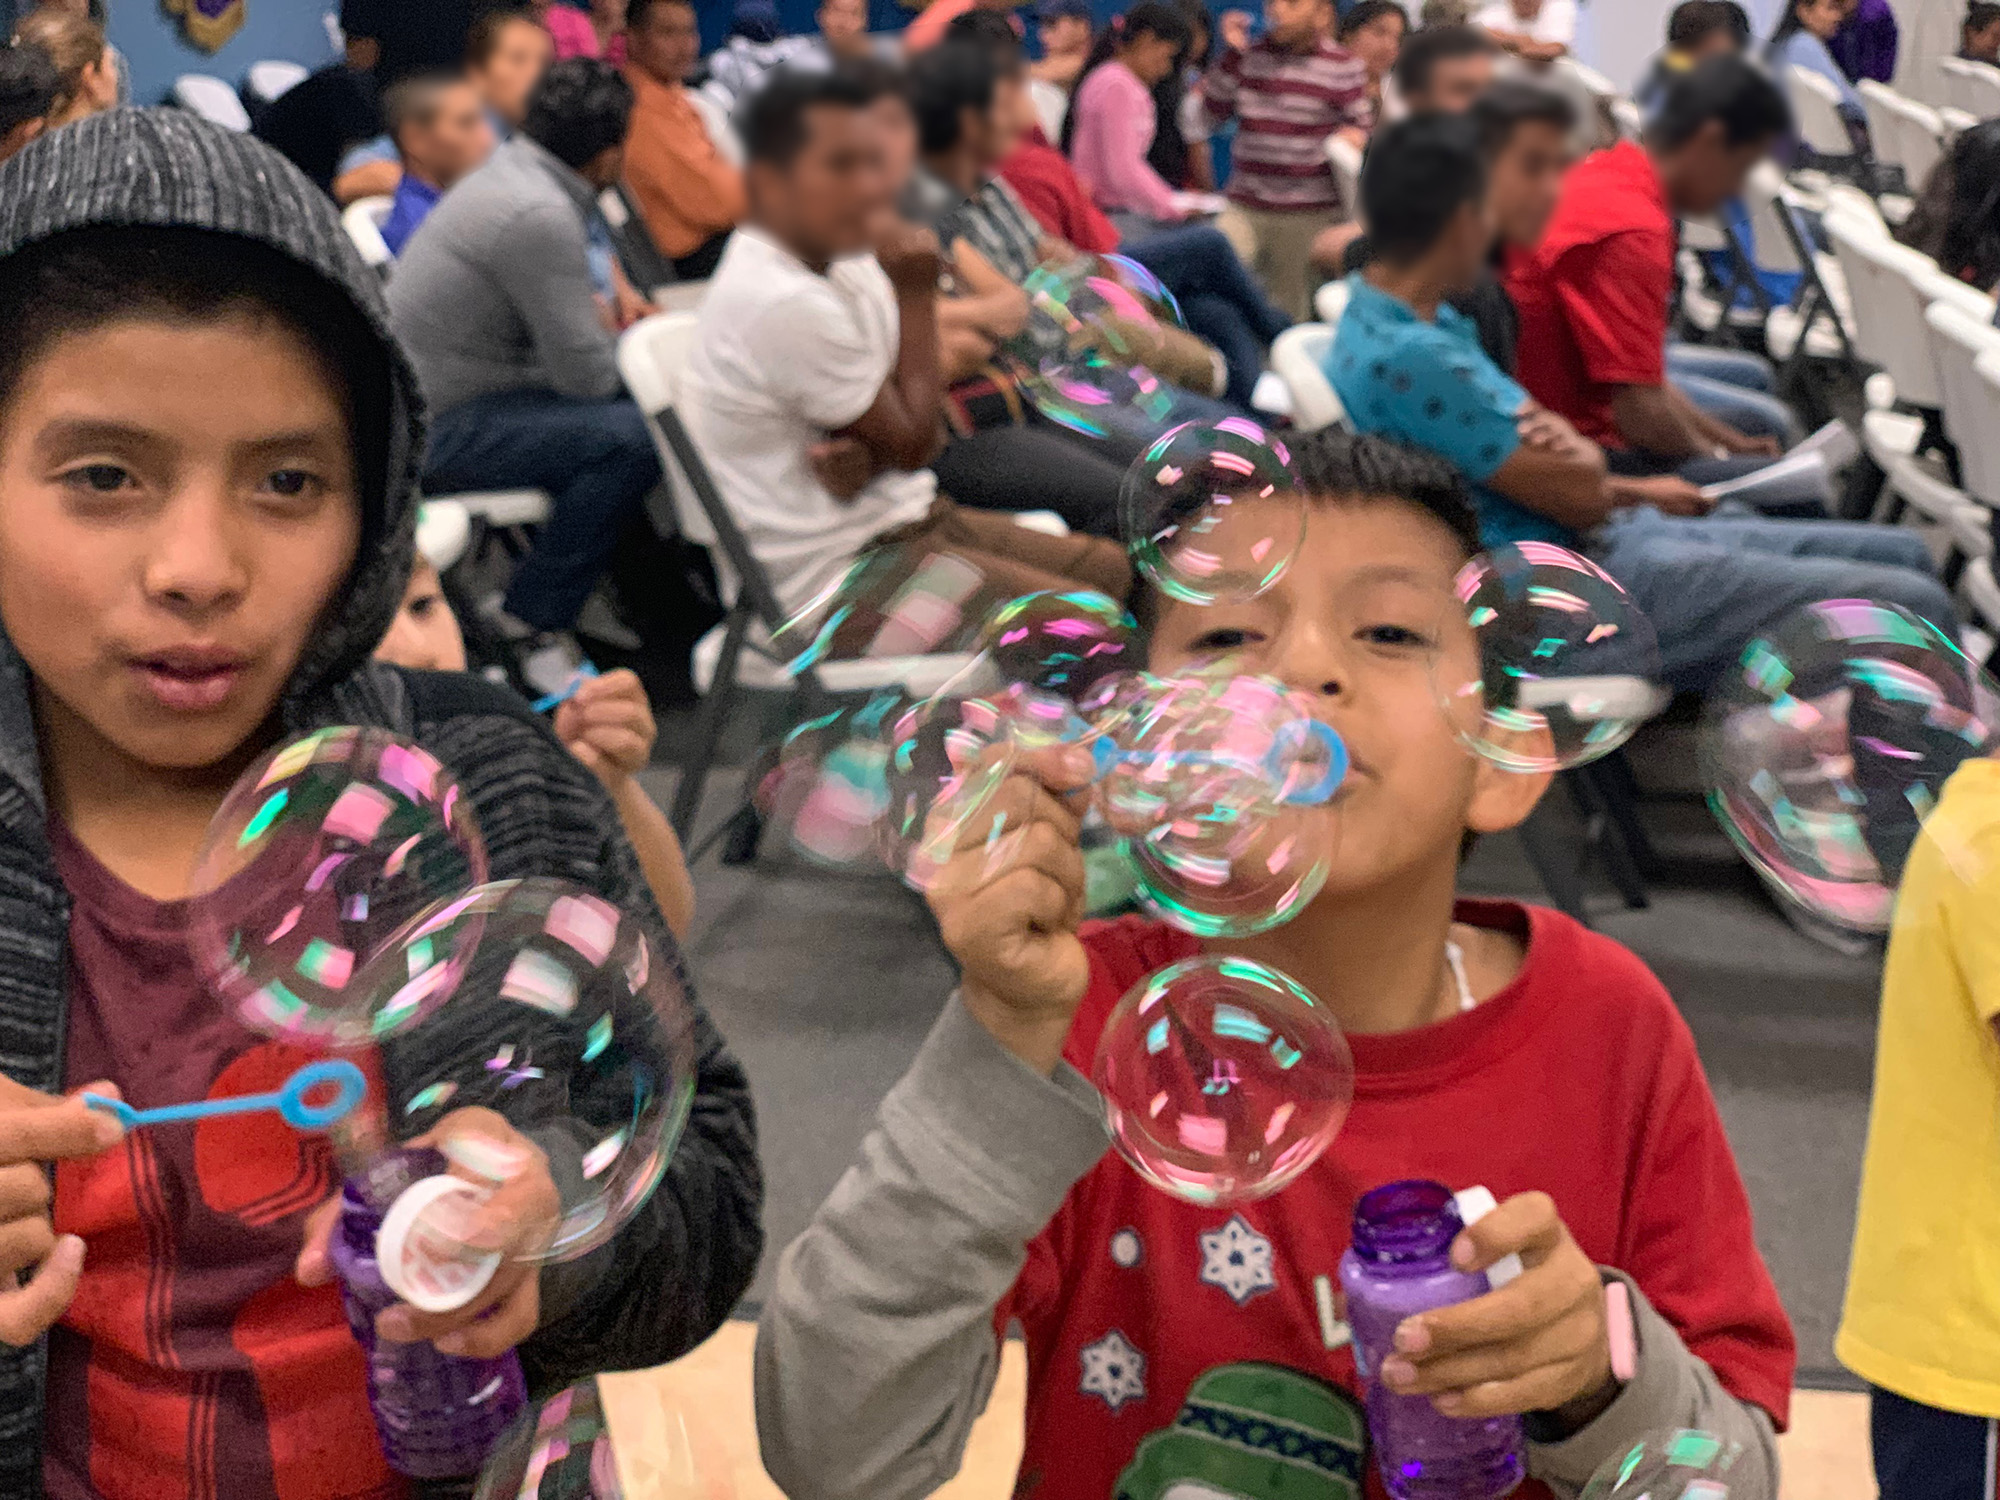 Without complaint, asylum seekers sat quietly in rows of chairs in the church sanctuary waiting for instructions and assistance, and patiently enduring—sometimes enjoying—the bubble-blowing exuberance of the children.